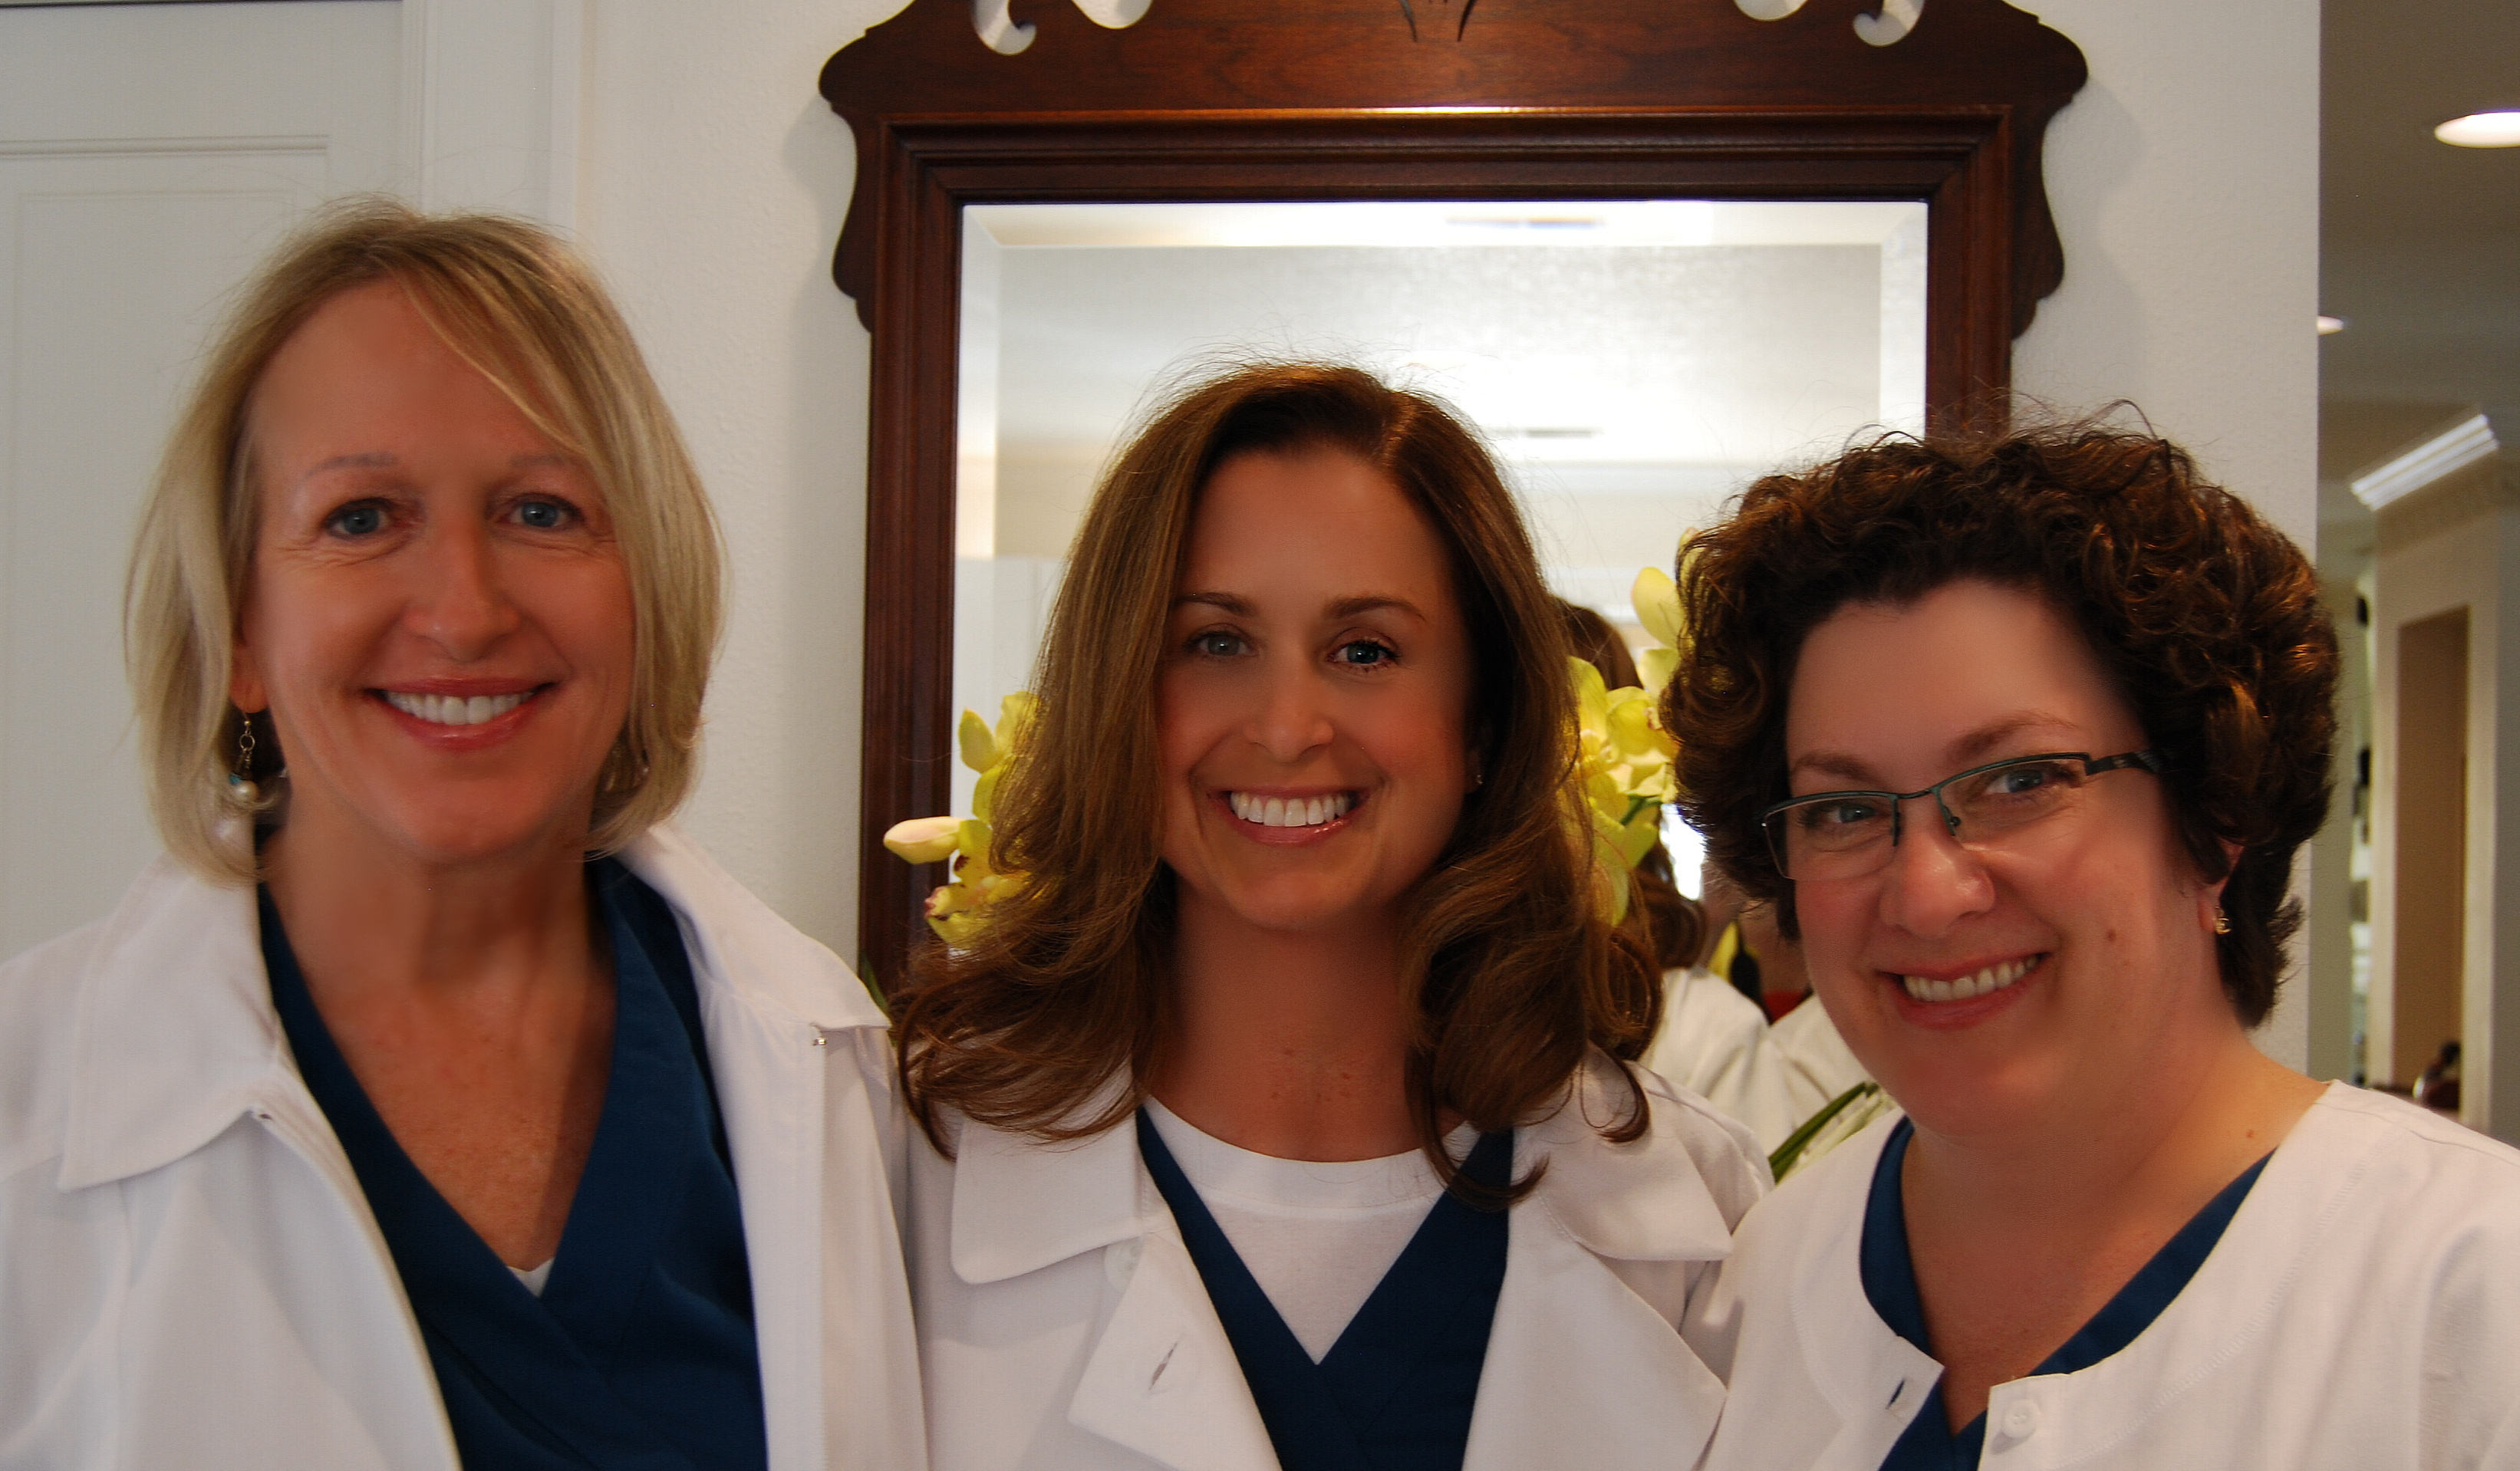 Dental Office in Eugene - Our Team